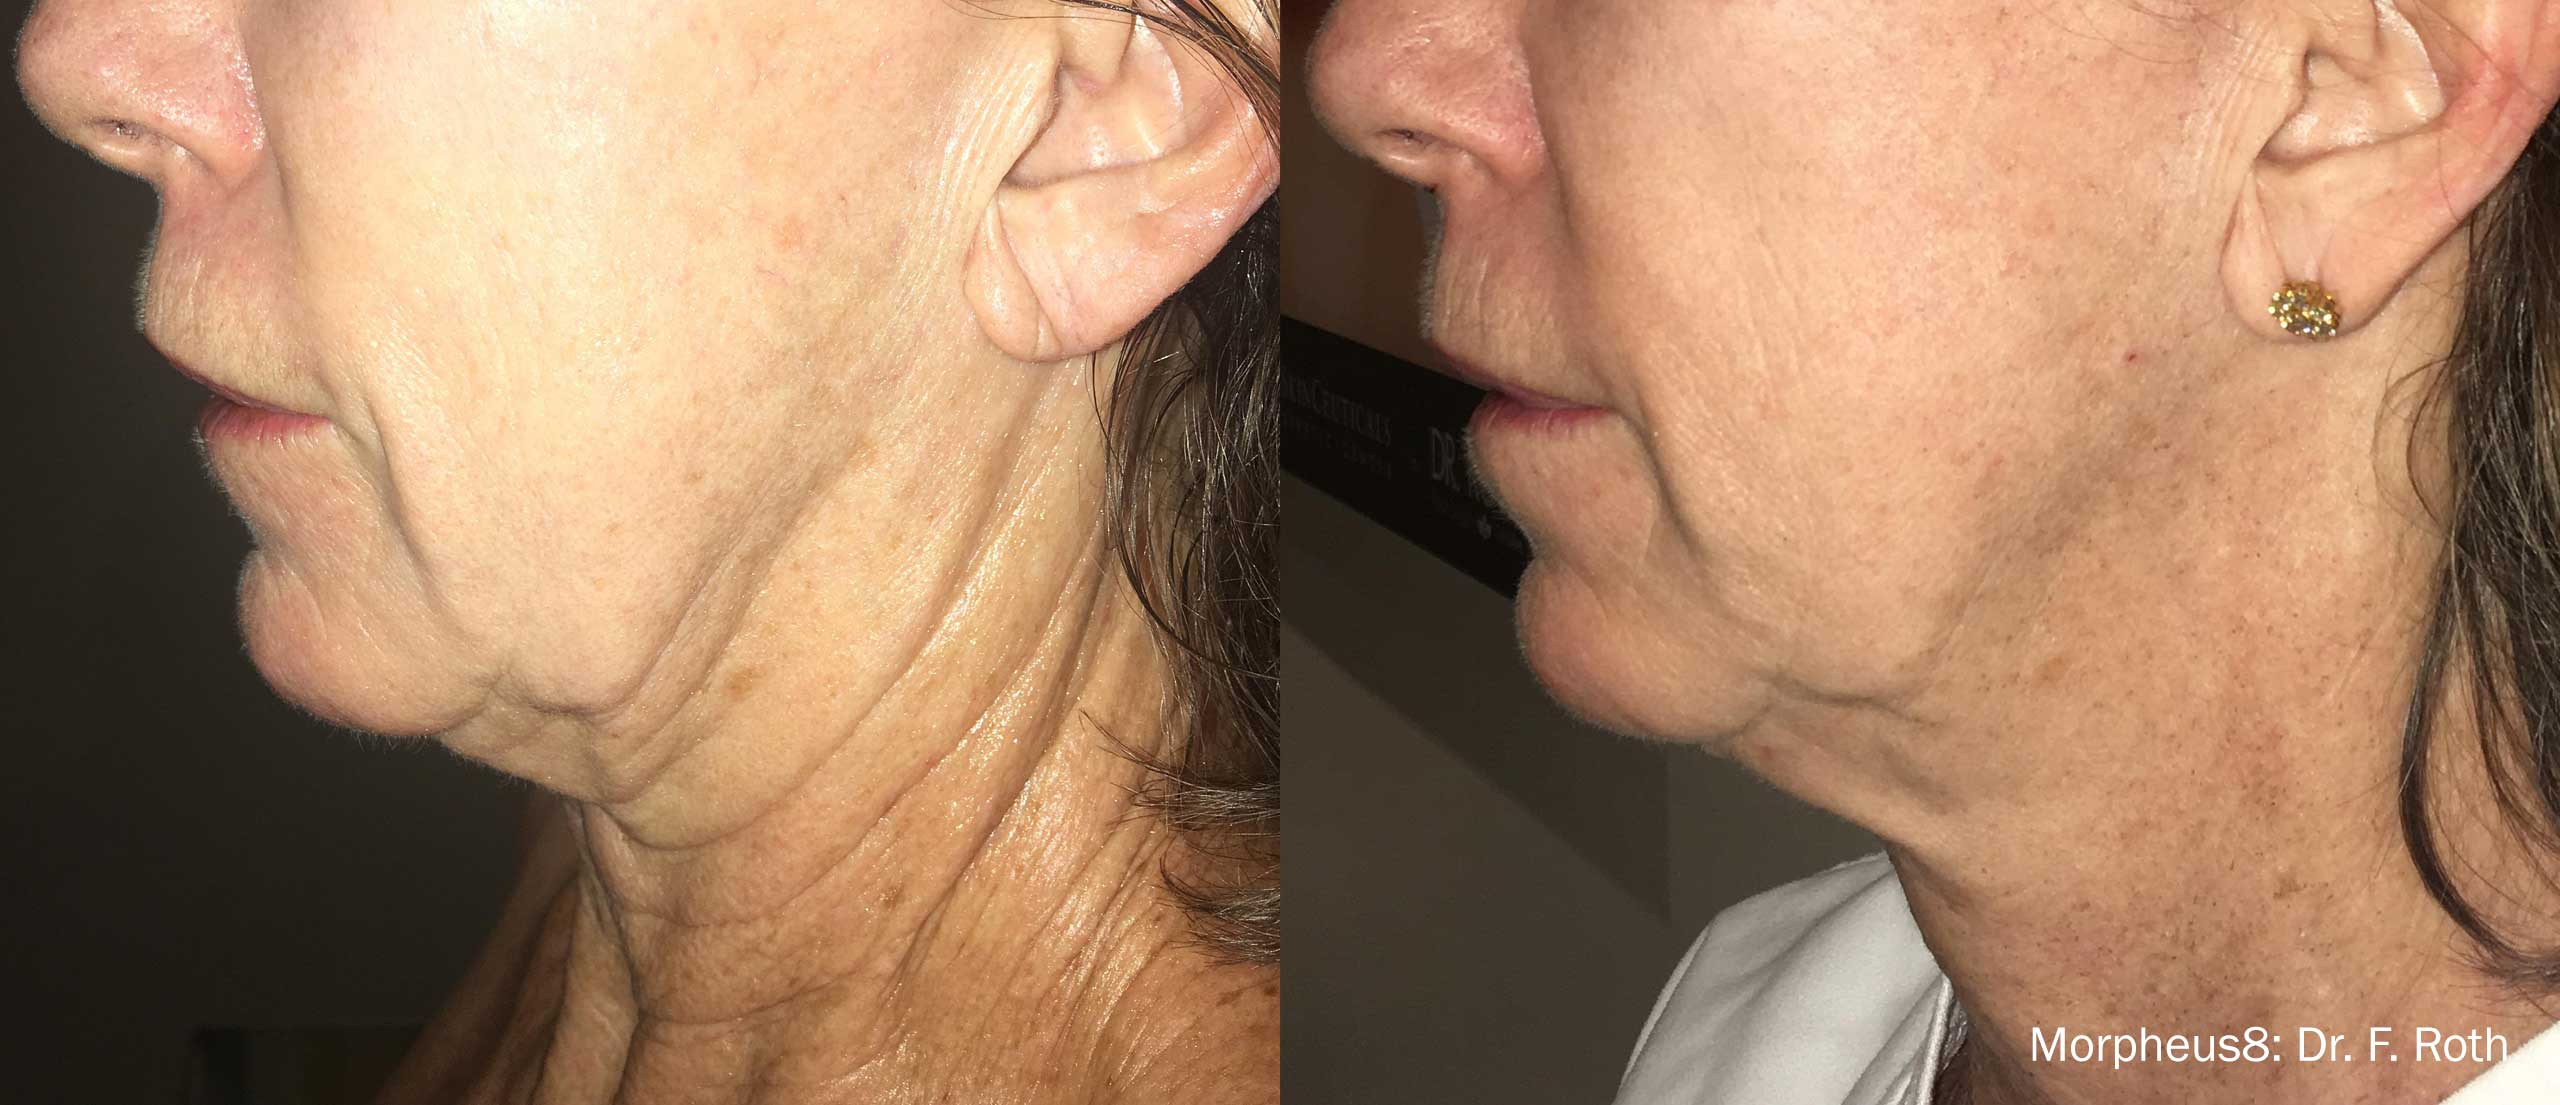 Morpheus8 microneedling RF results on a New York City patient